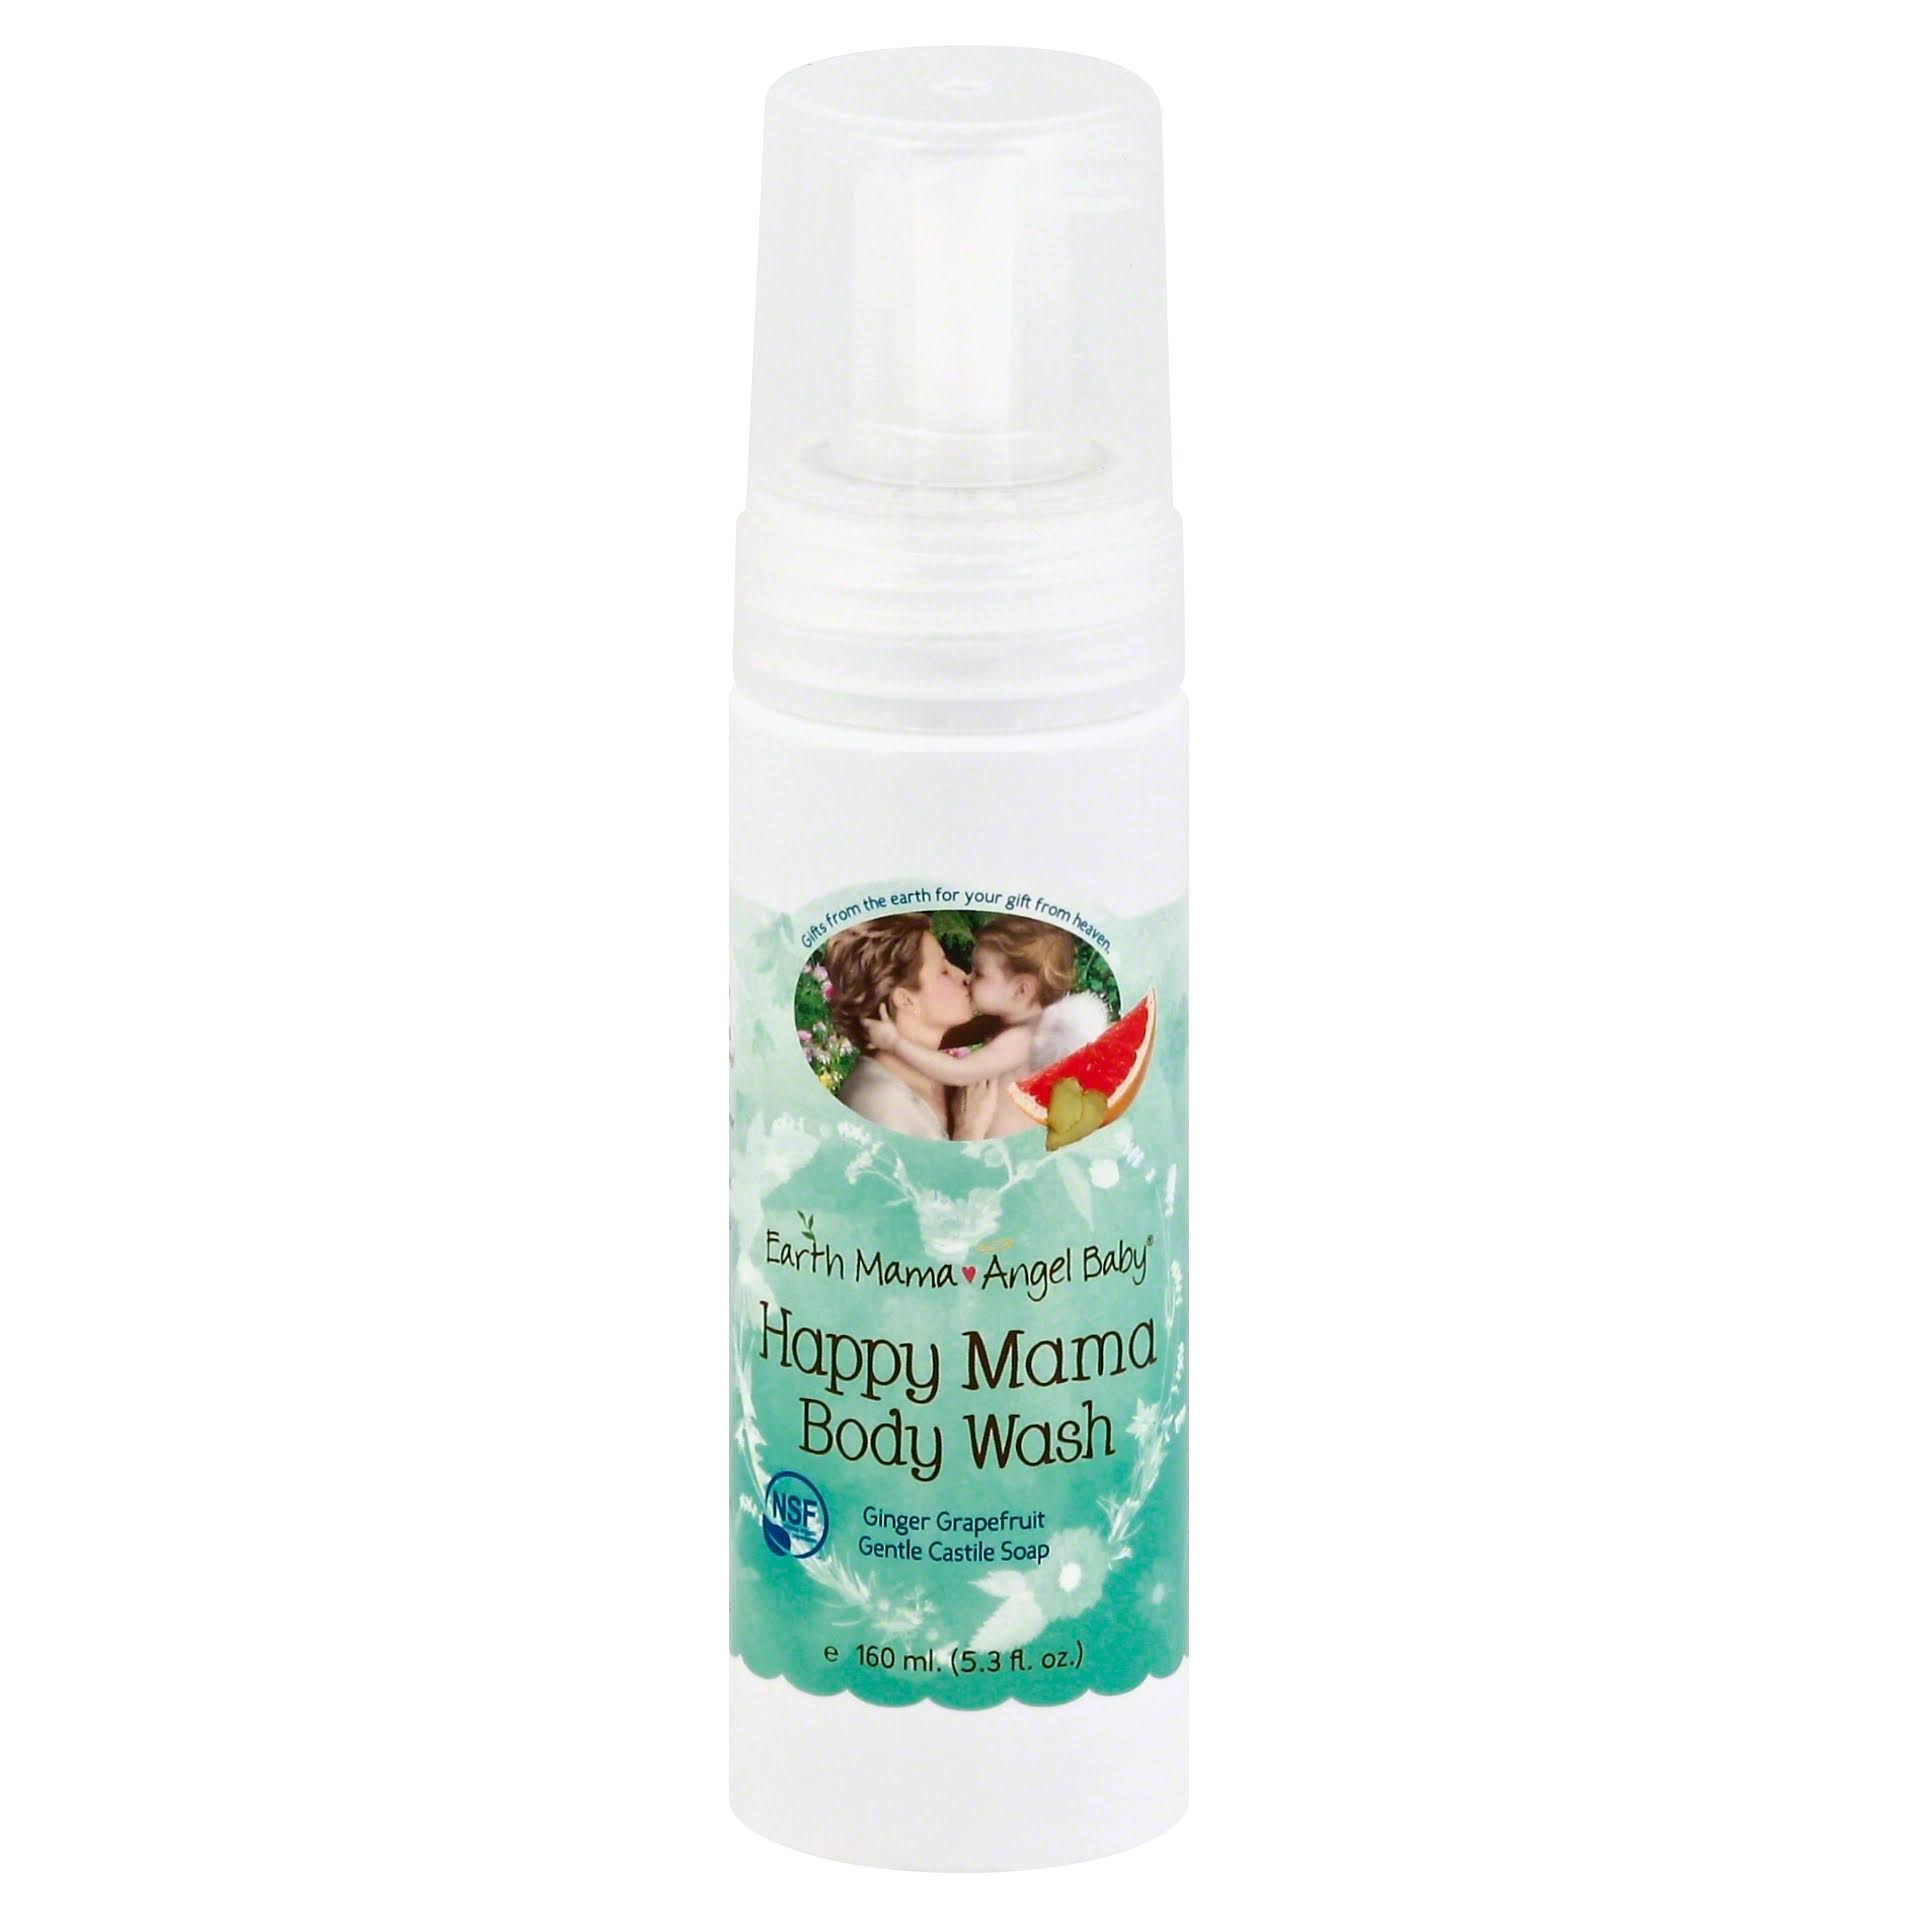 Earth Mama Angel Baby Happy Mama Body Wash - Ginger/Grapefruit, 5.3oz